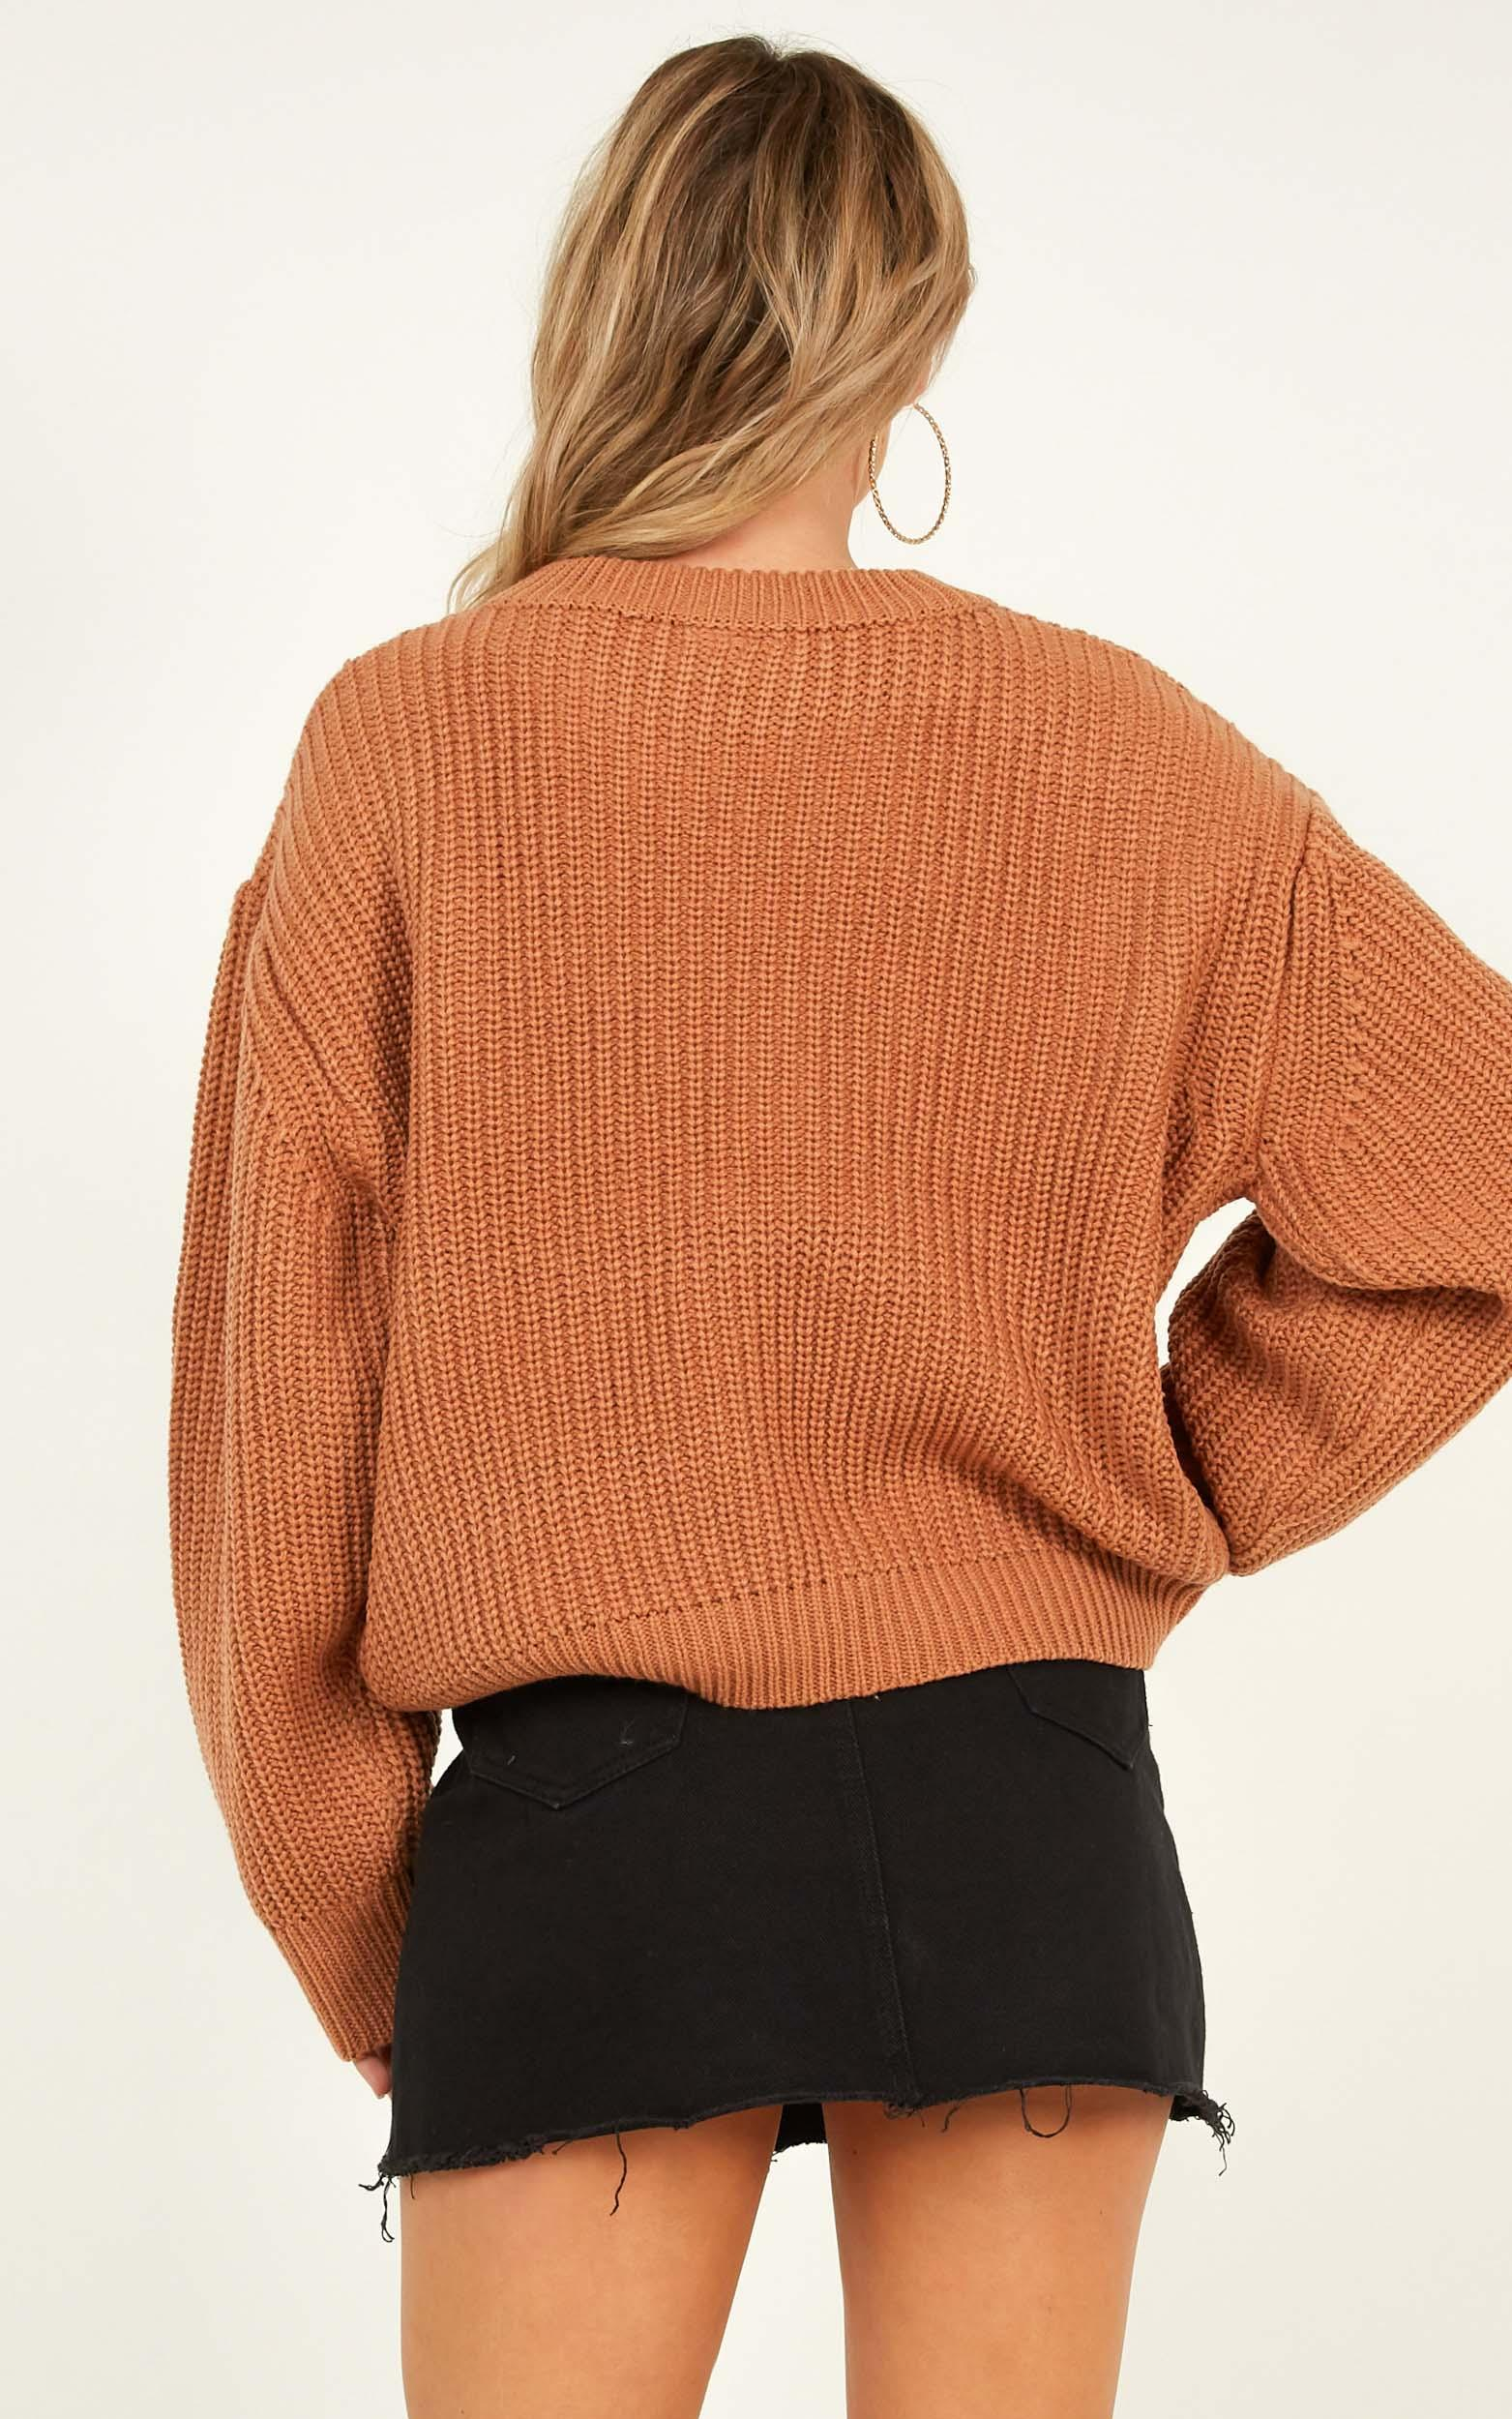 Fleeting Moments Knit Jumper in camel - 12 (L), Camel, hi-res image number null